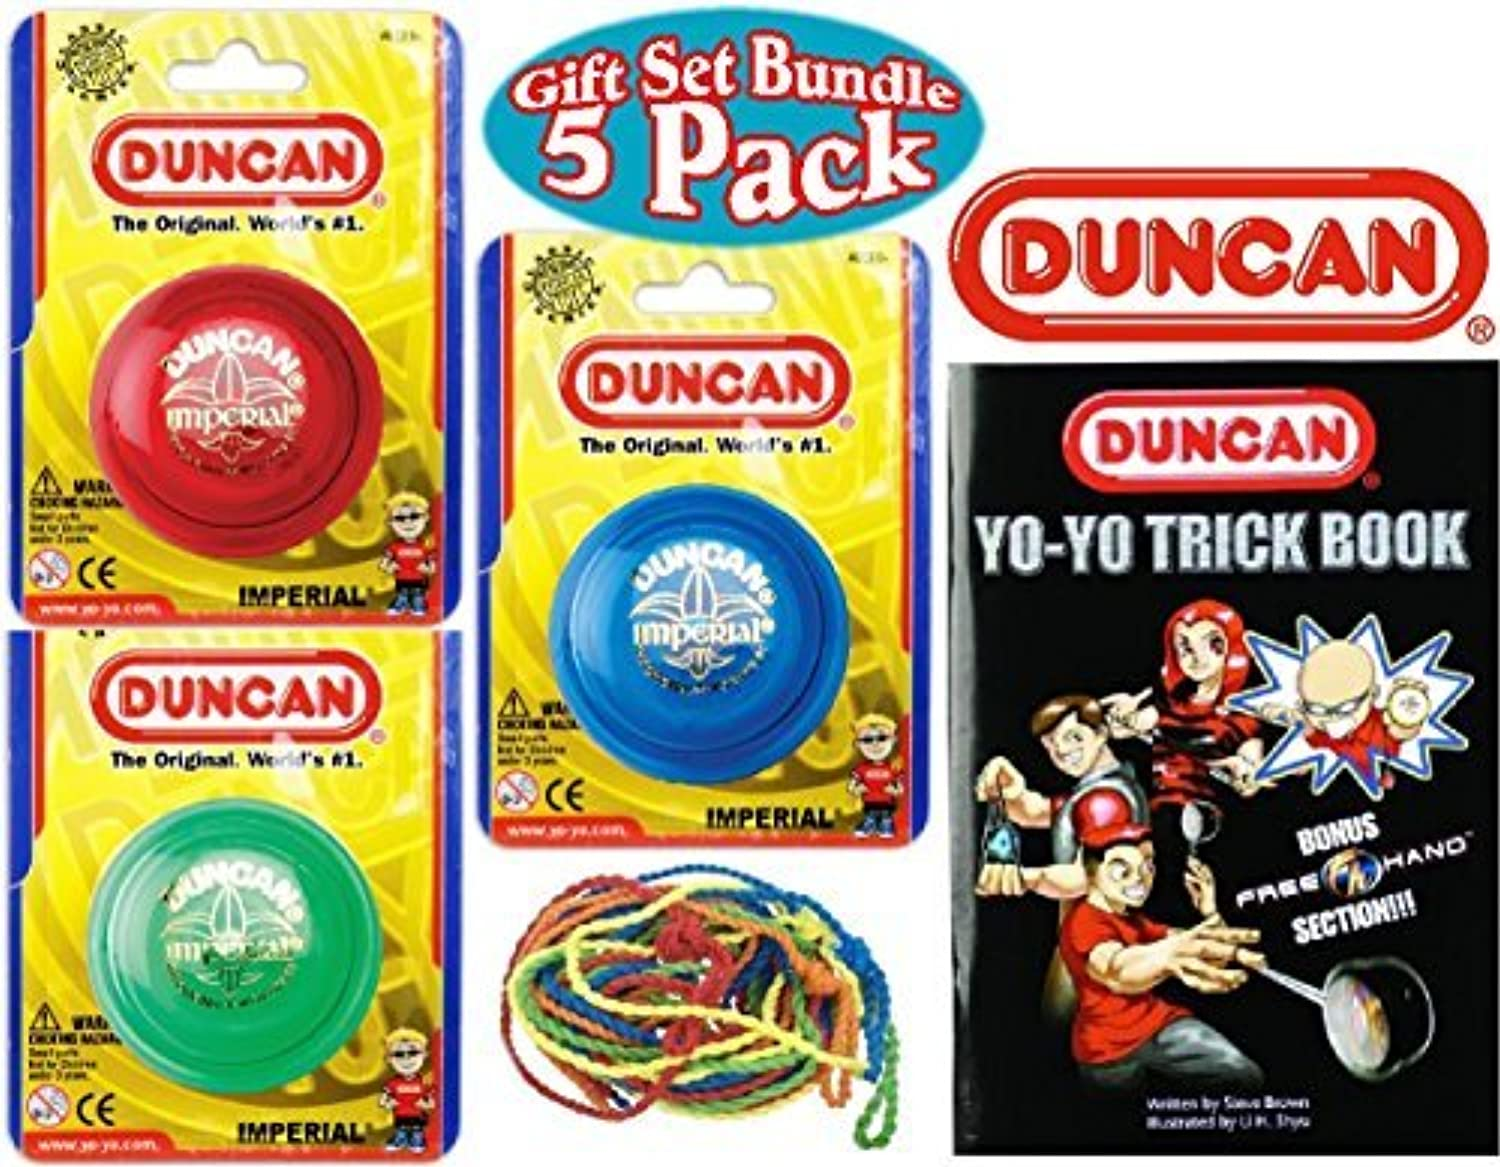 Duncan Yo-Yo Imperial (3), Trick Book & 10 Strings Deluxe Gift Set Bundle - 5 Pack (Assorted Colors) by Duncan [並行輸入品]